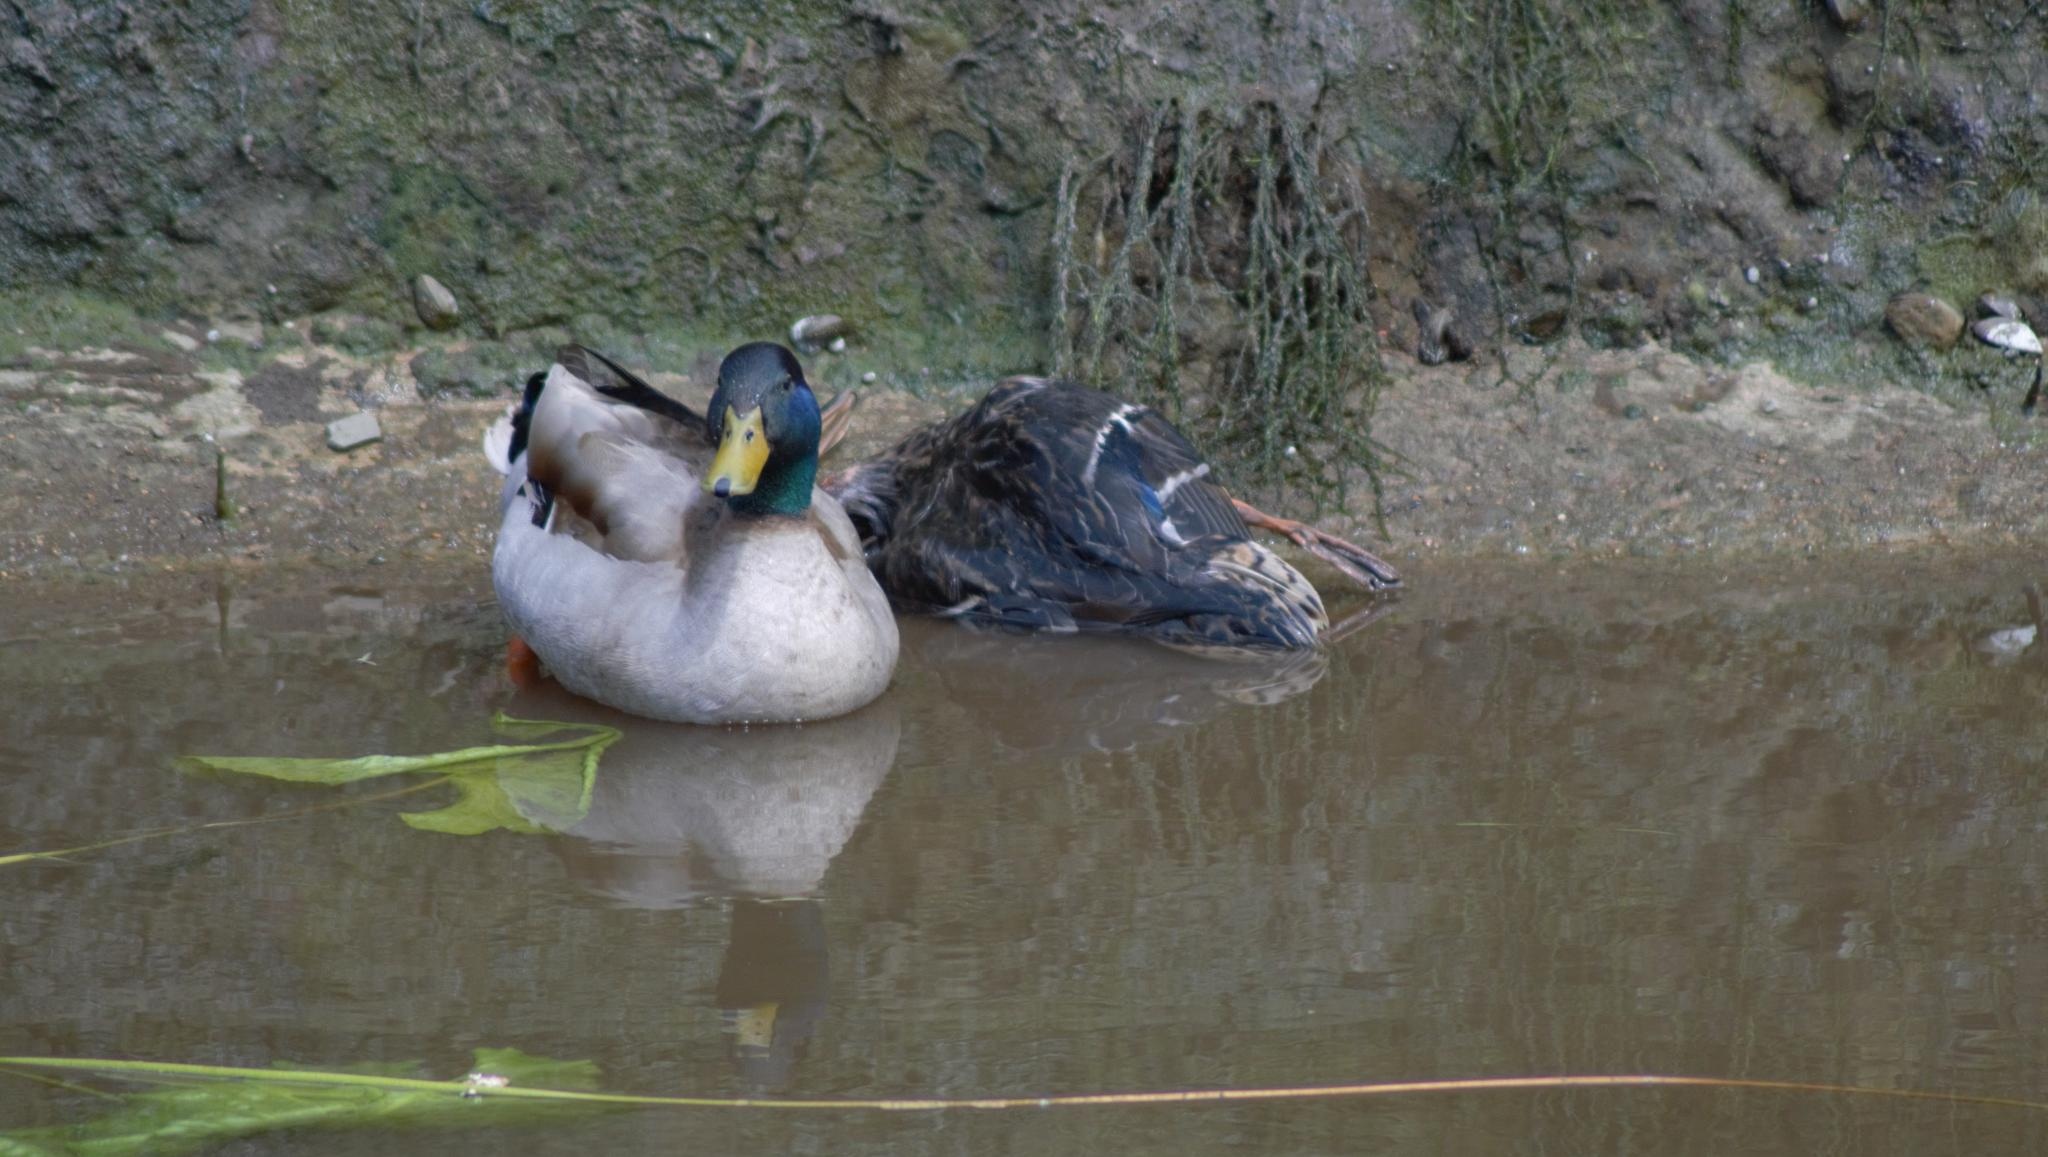 Poor Daisy had gone but Daffy stayed with her body ..R.I.P by Meldrew